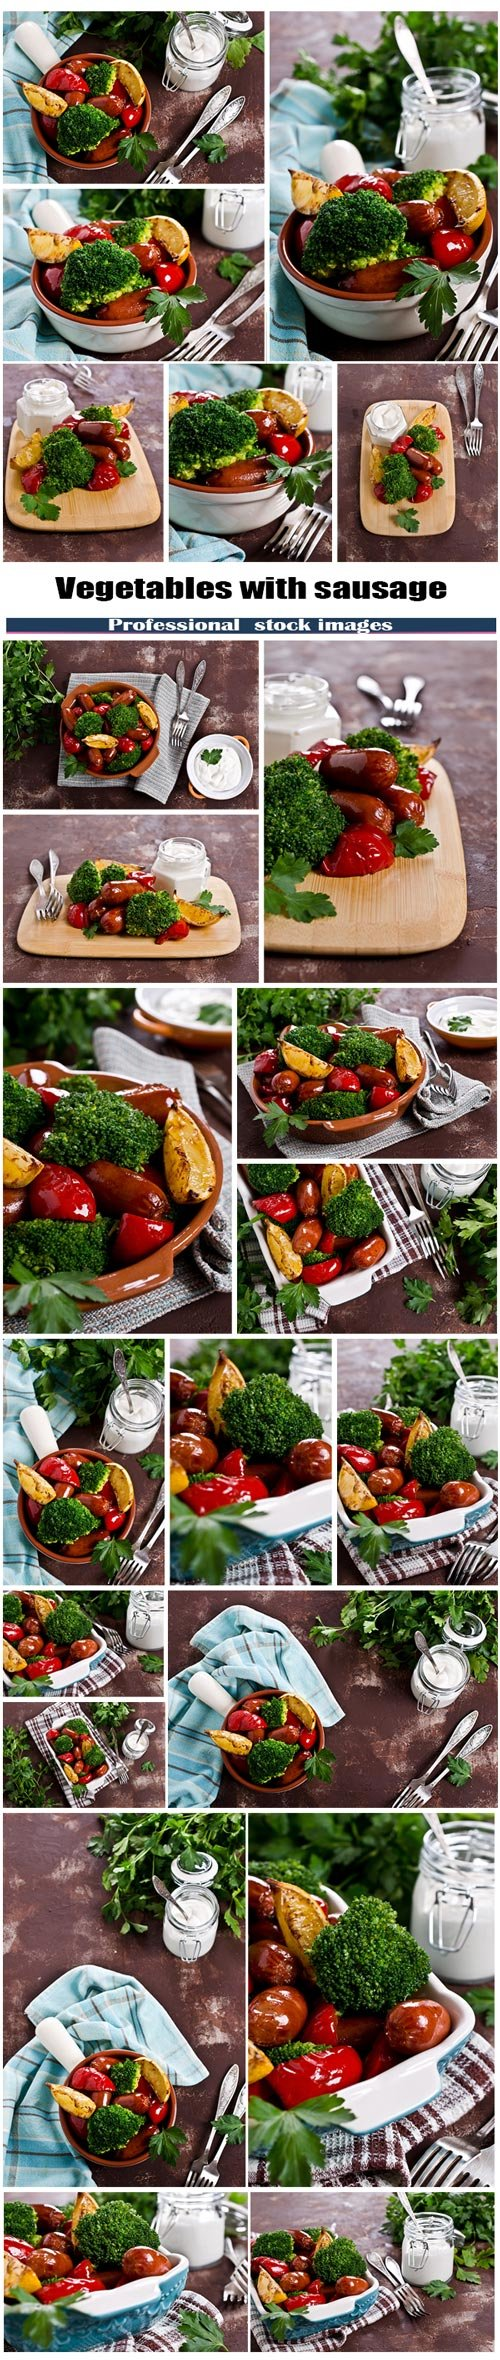 Vegetables with sausage